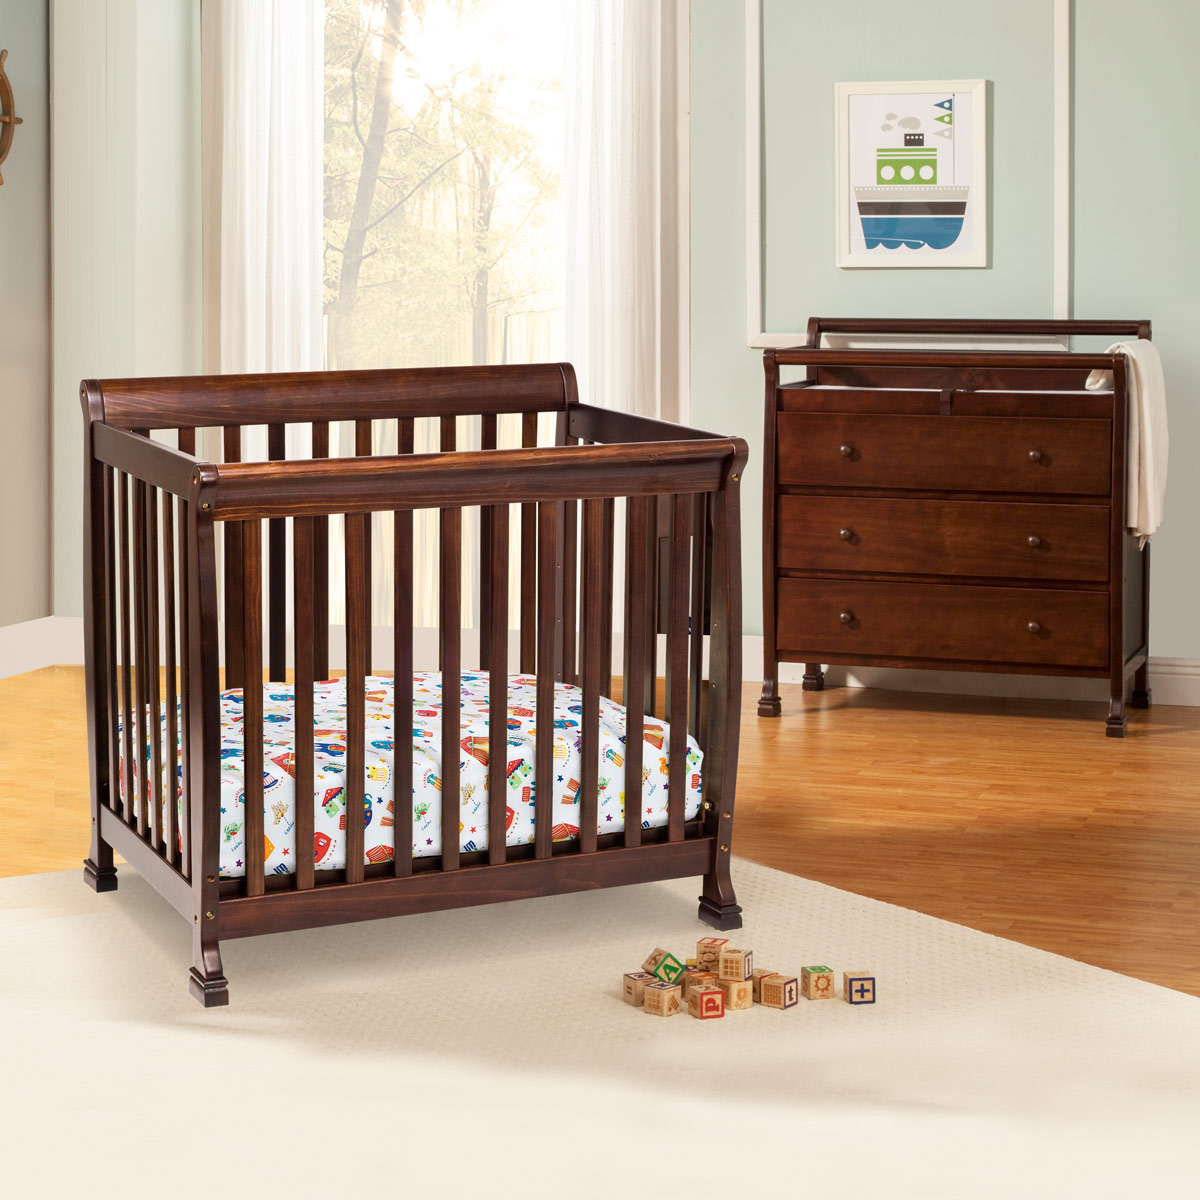 Delicieux Da Vinci 2 Piece Nursery Set   Kalani Mini Crib And 3 Drawer Changing Table  In Espresso FREE SHIPPING